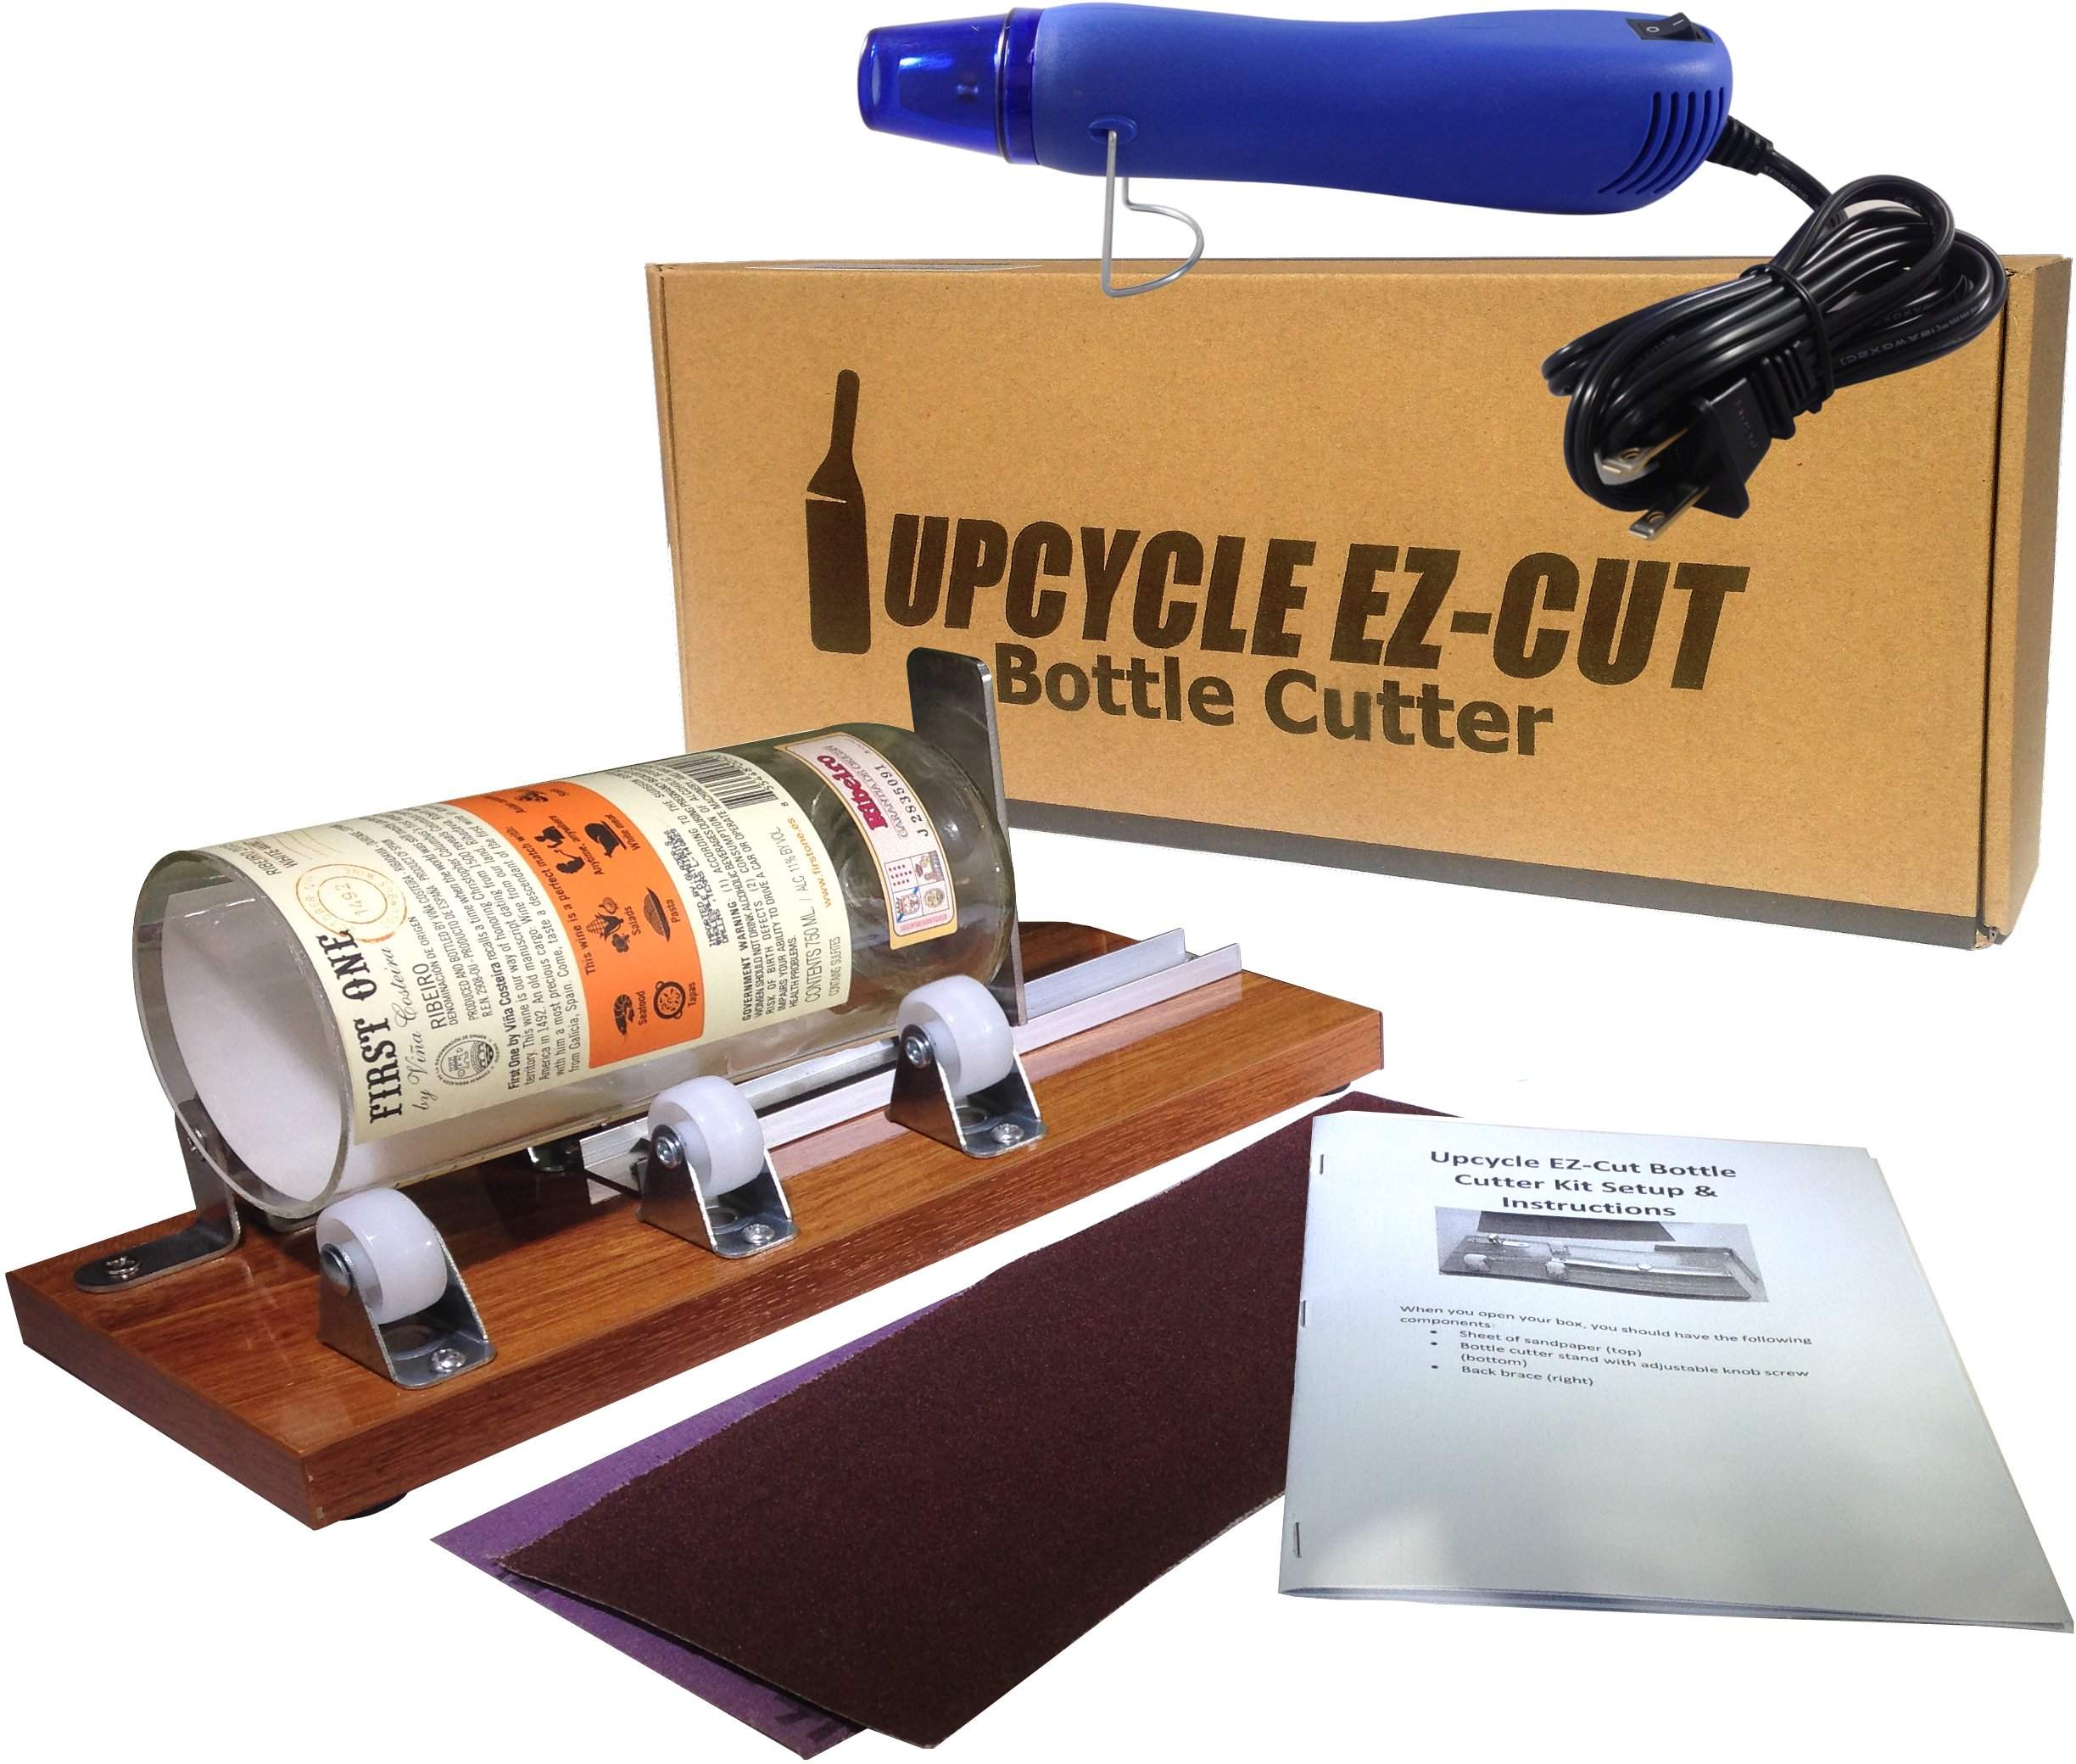 Glass Bottle Cutter (Deluxe) Kit, Upcycle EZ-Cut: Beer & Wine Bottle Cutting + Edge Sanding Paper & Heat Tool by Upcycle EZ-Cut Bottle Cutter